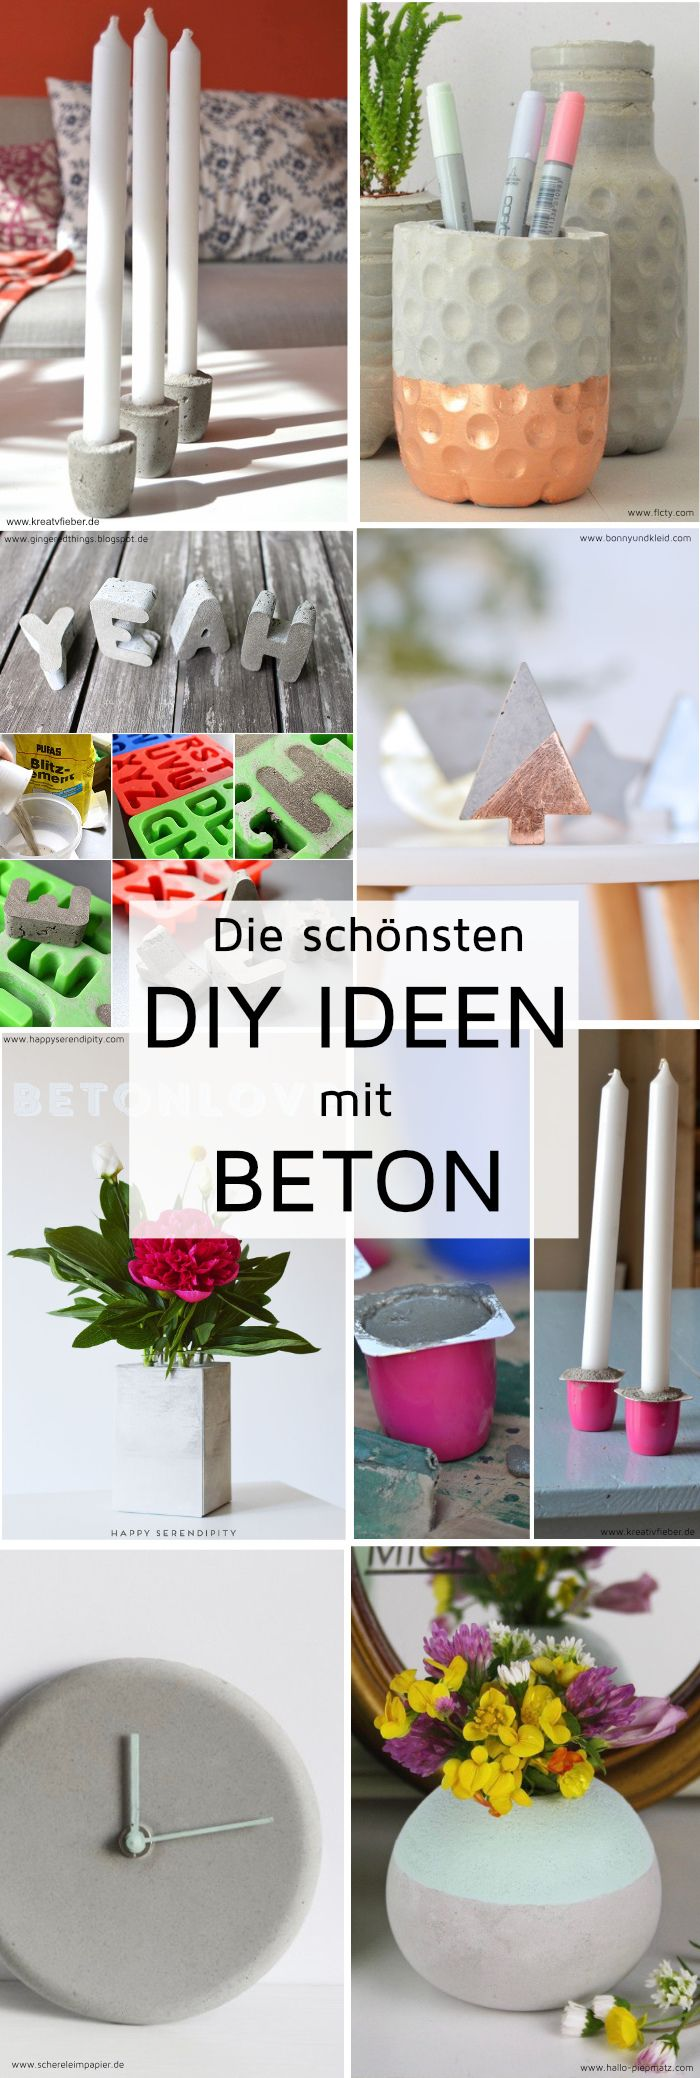 die besten 25 beton deko ideen auf pinterest diy beton beton diy und beton basteln. Black Bedroom Furniture Sets. Home Design Ideas